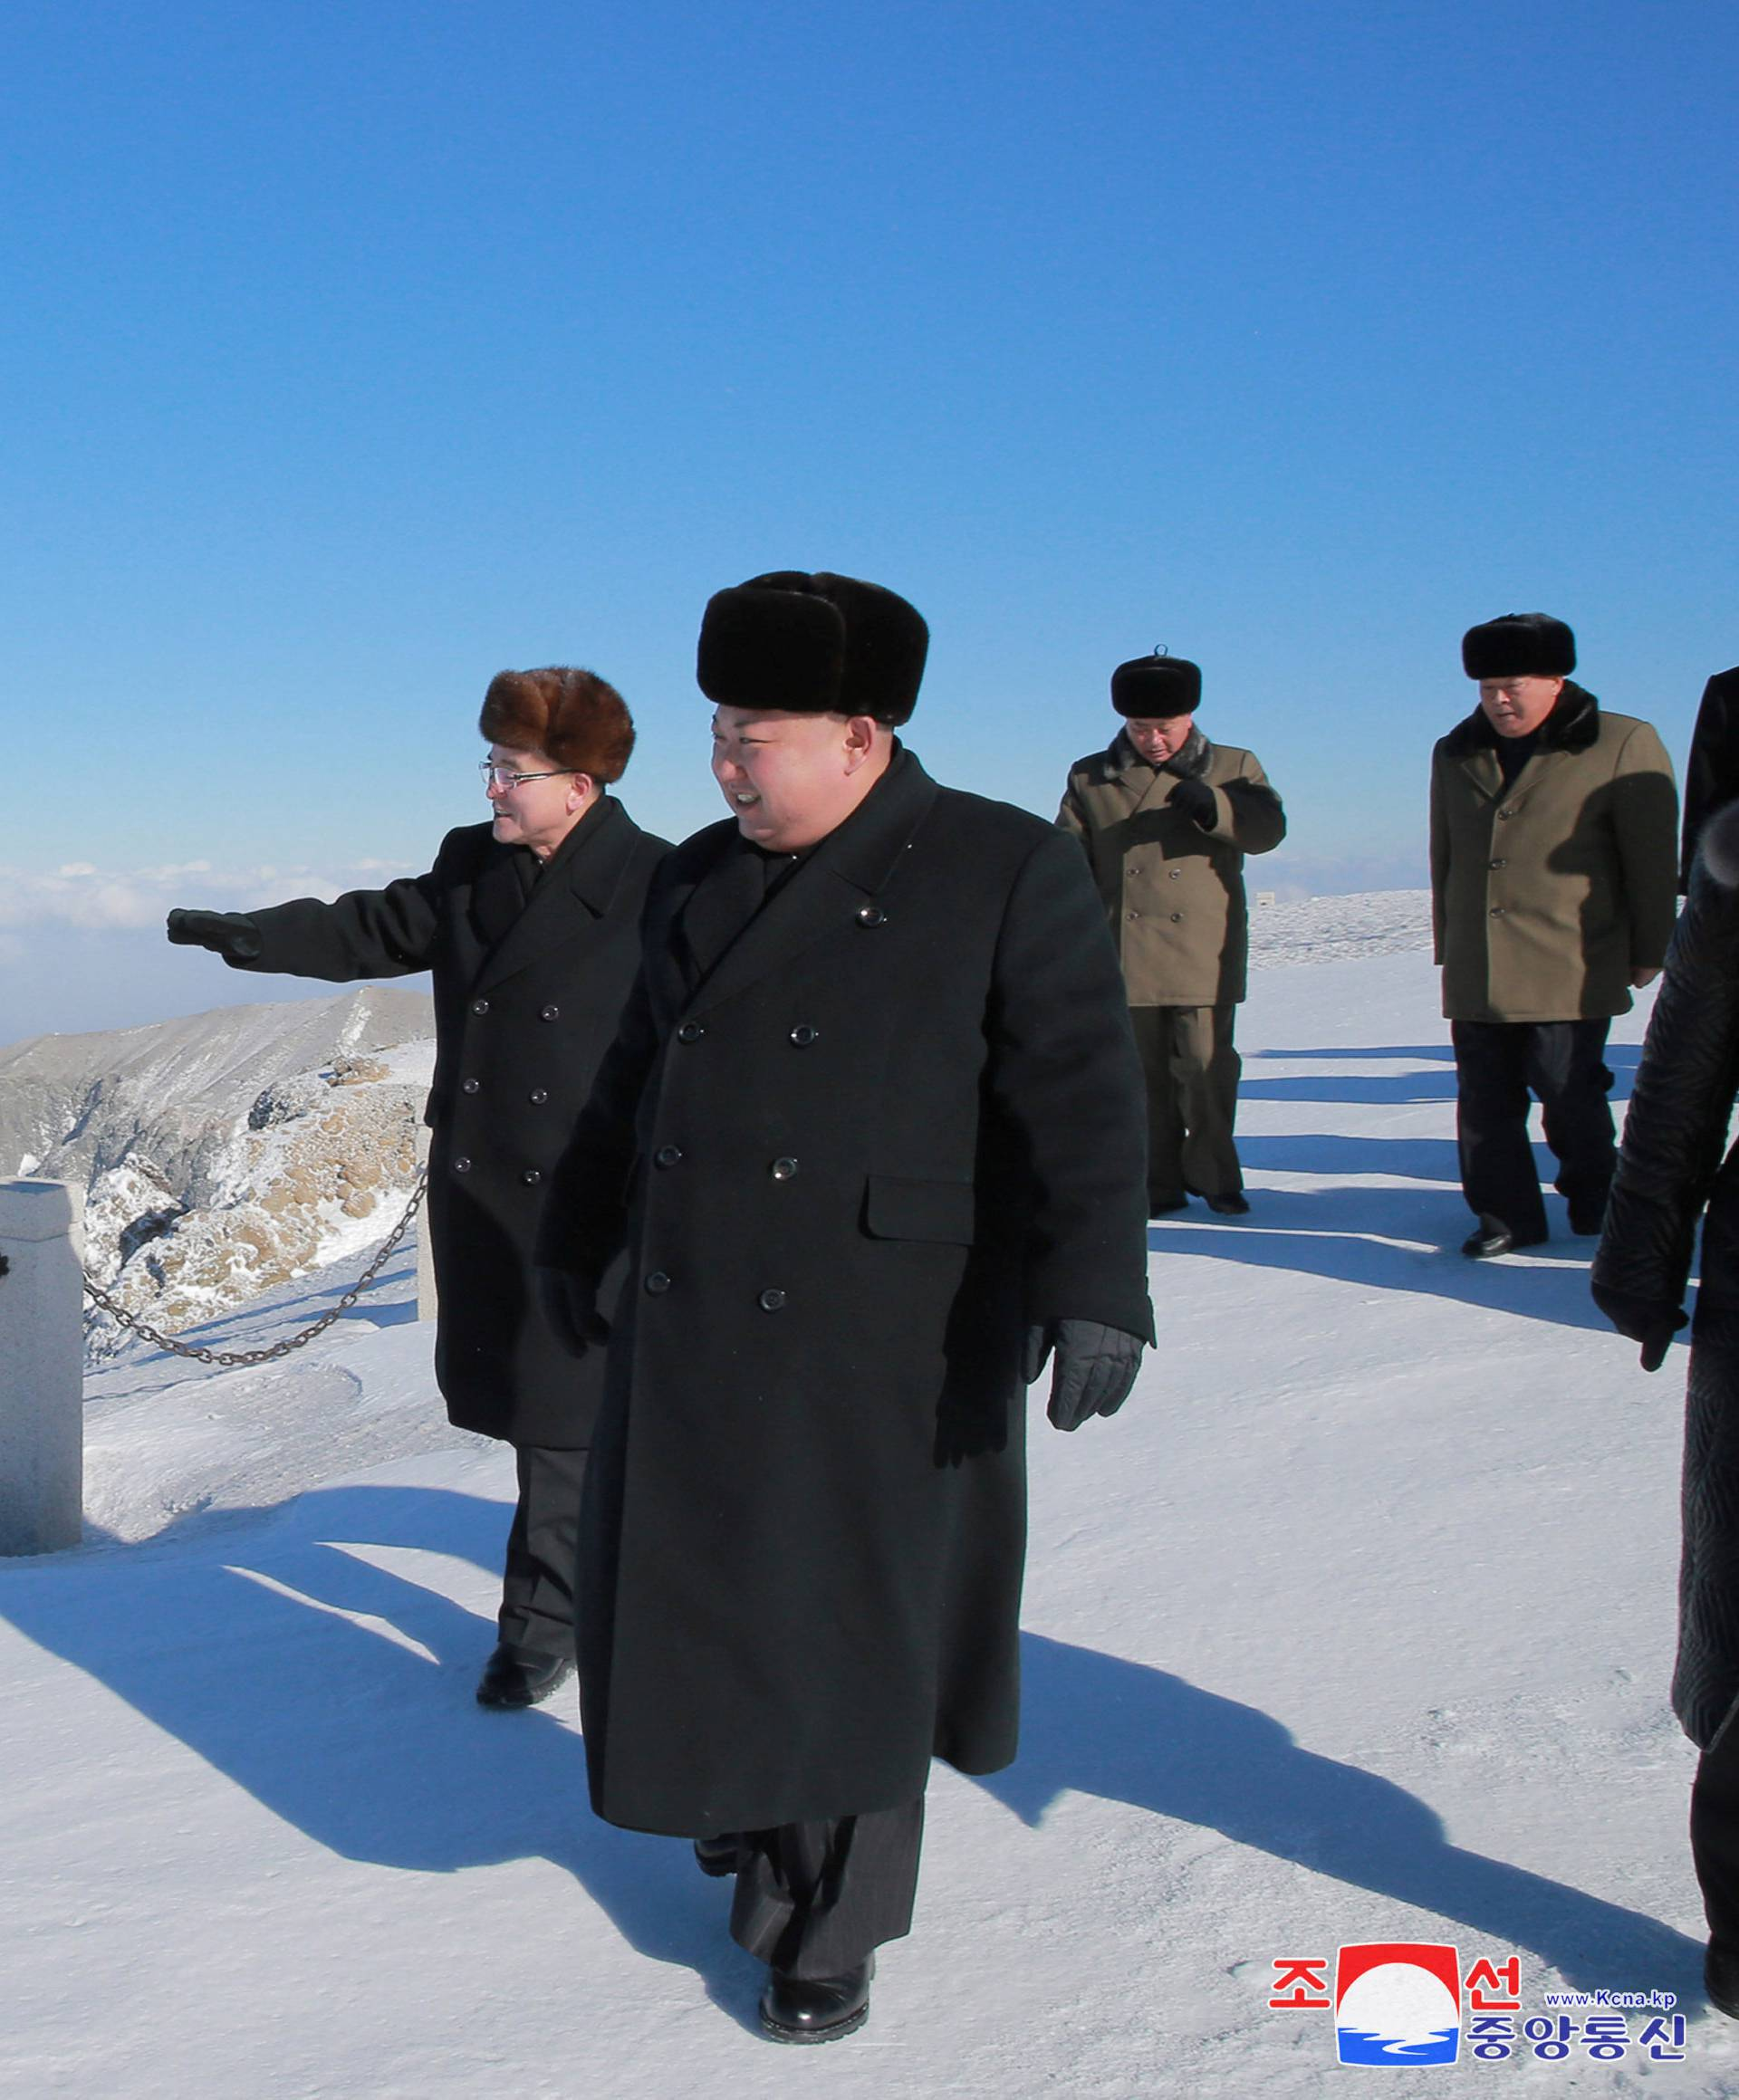 North Korean leader Kim Jong Un visits Mount Paektu in this photo released by North Korea's KCNA